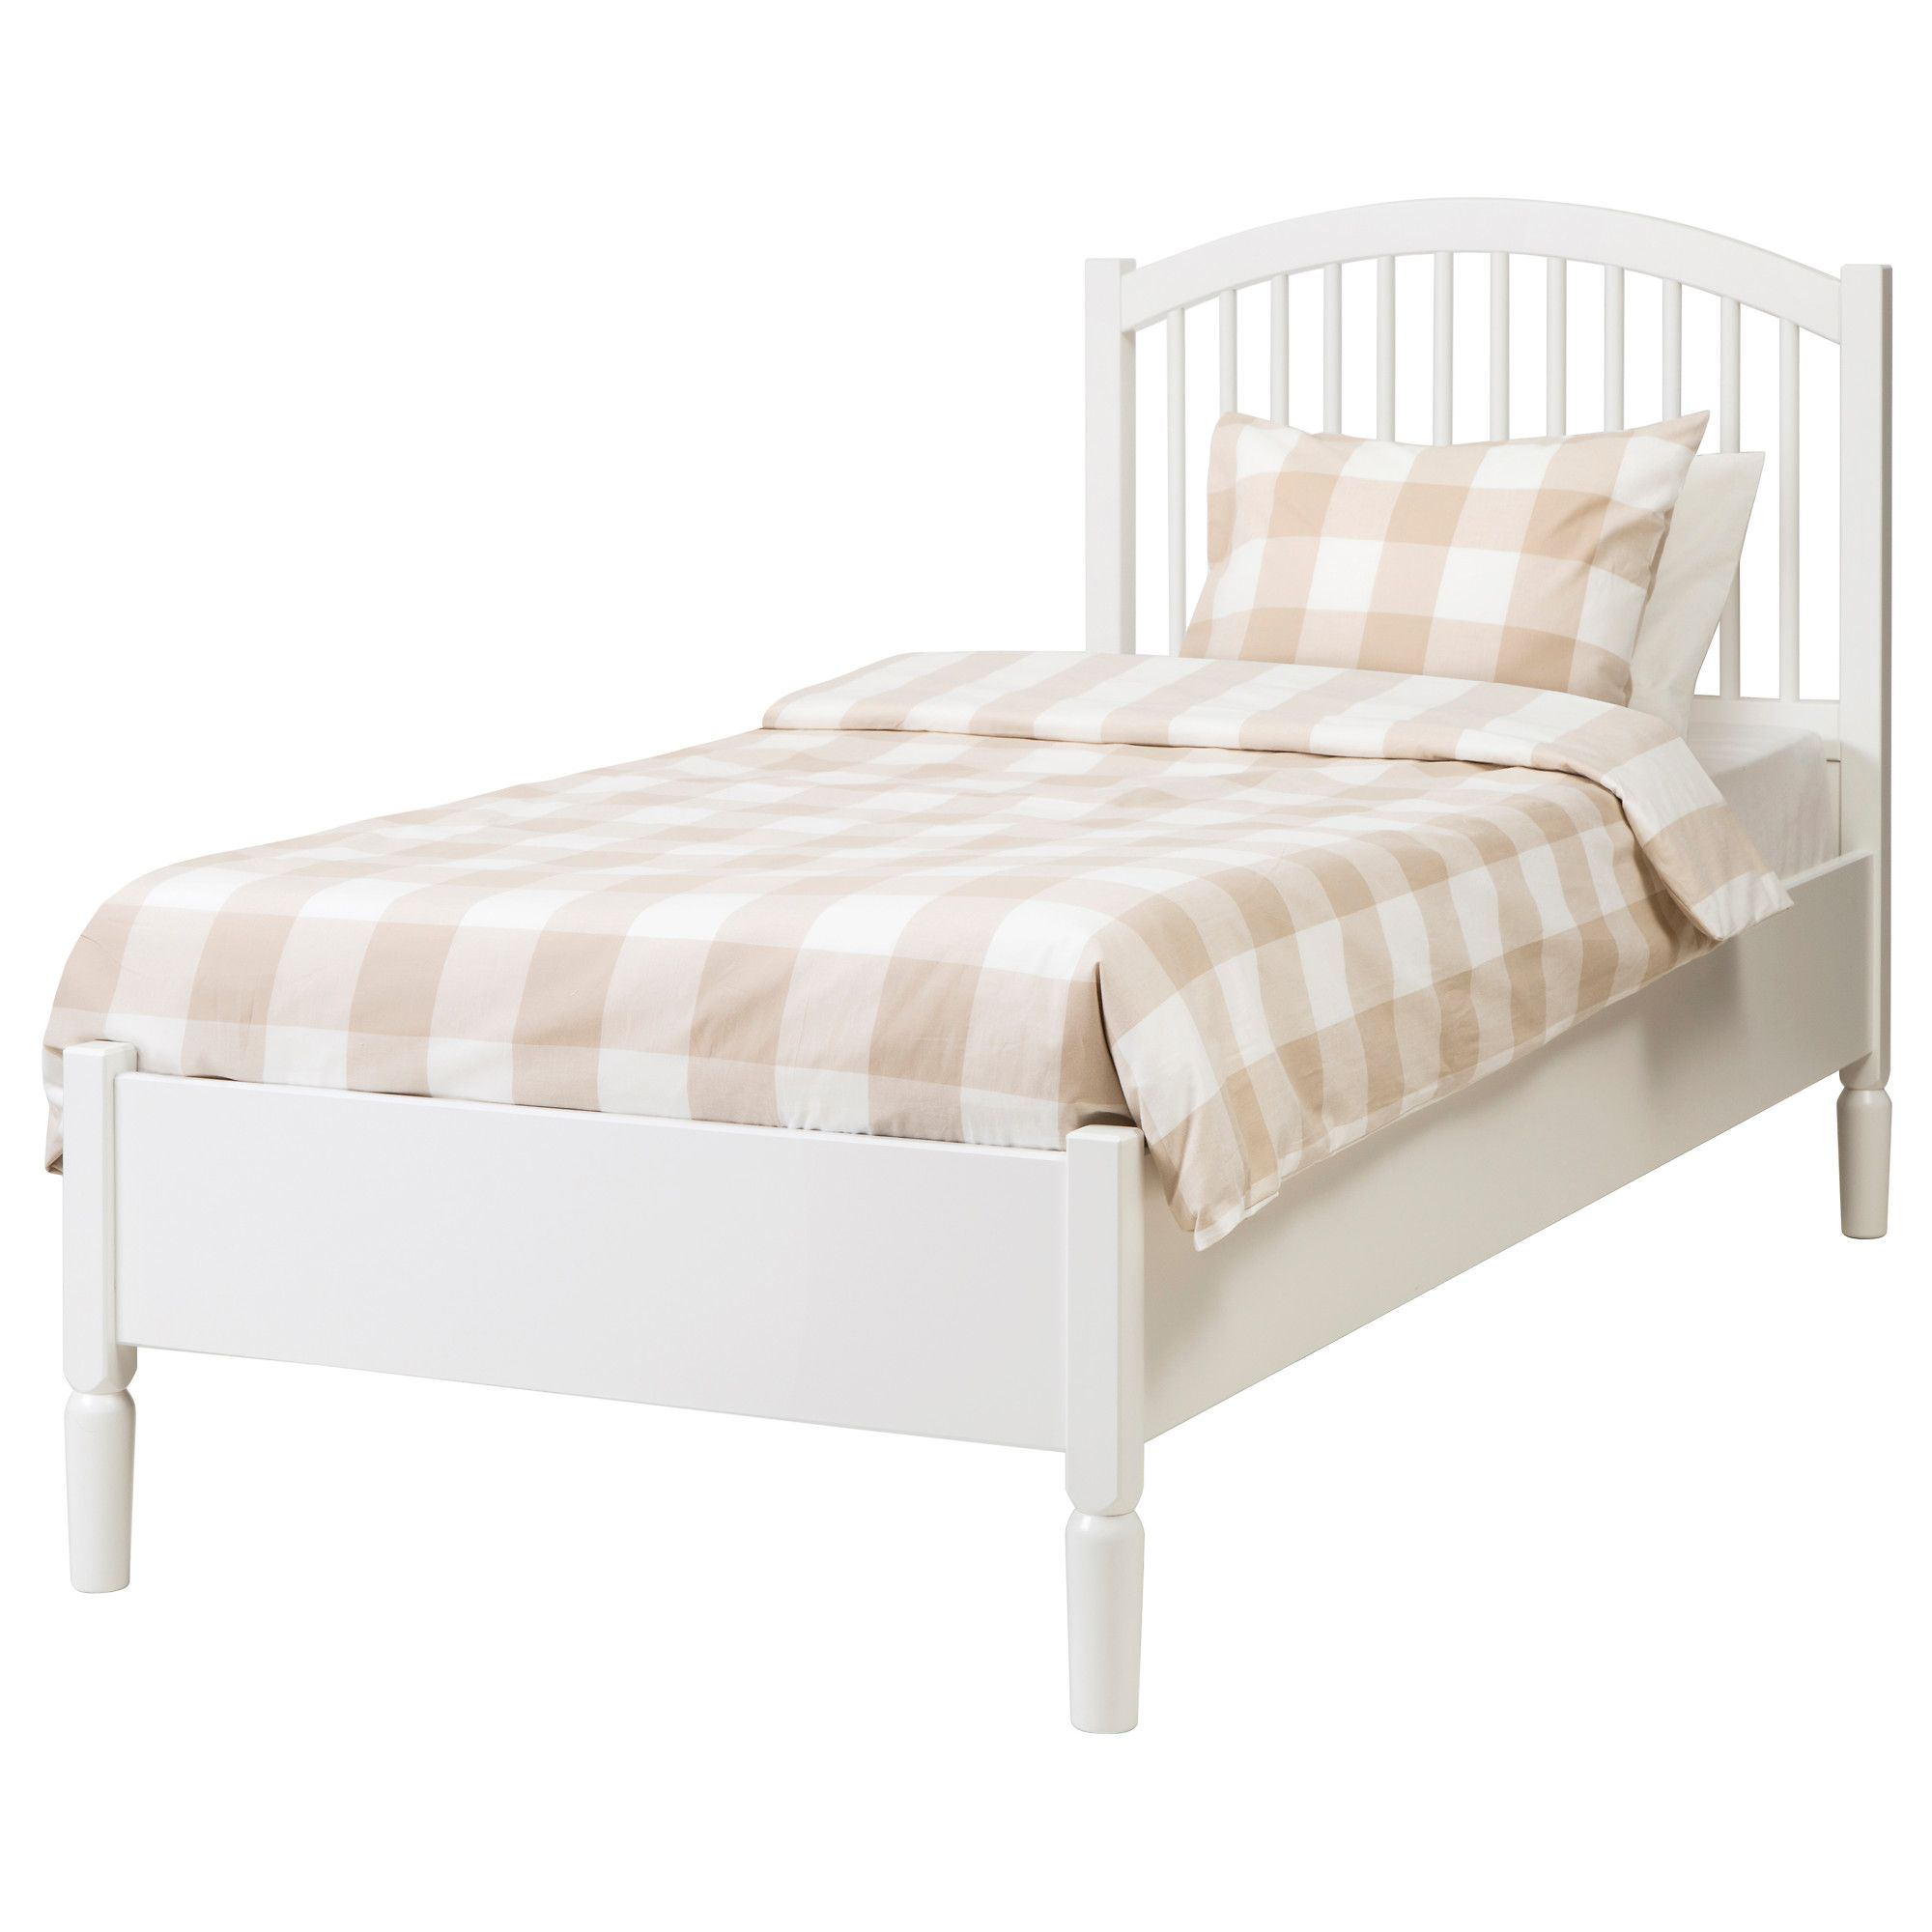 Furniture Home Furnishings Find Your Inspiration Bed Frame Ikea Bed Ikea Toddler Bed